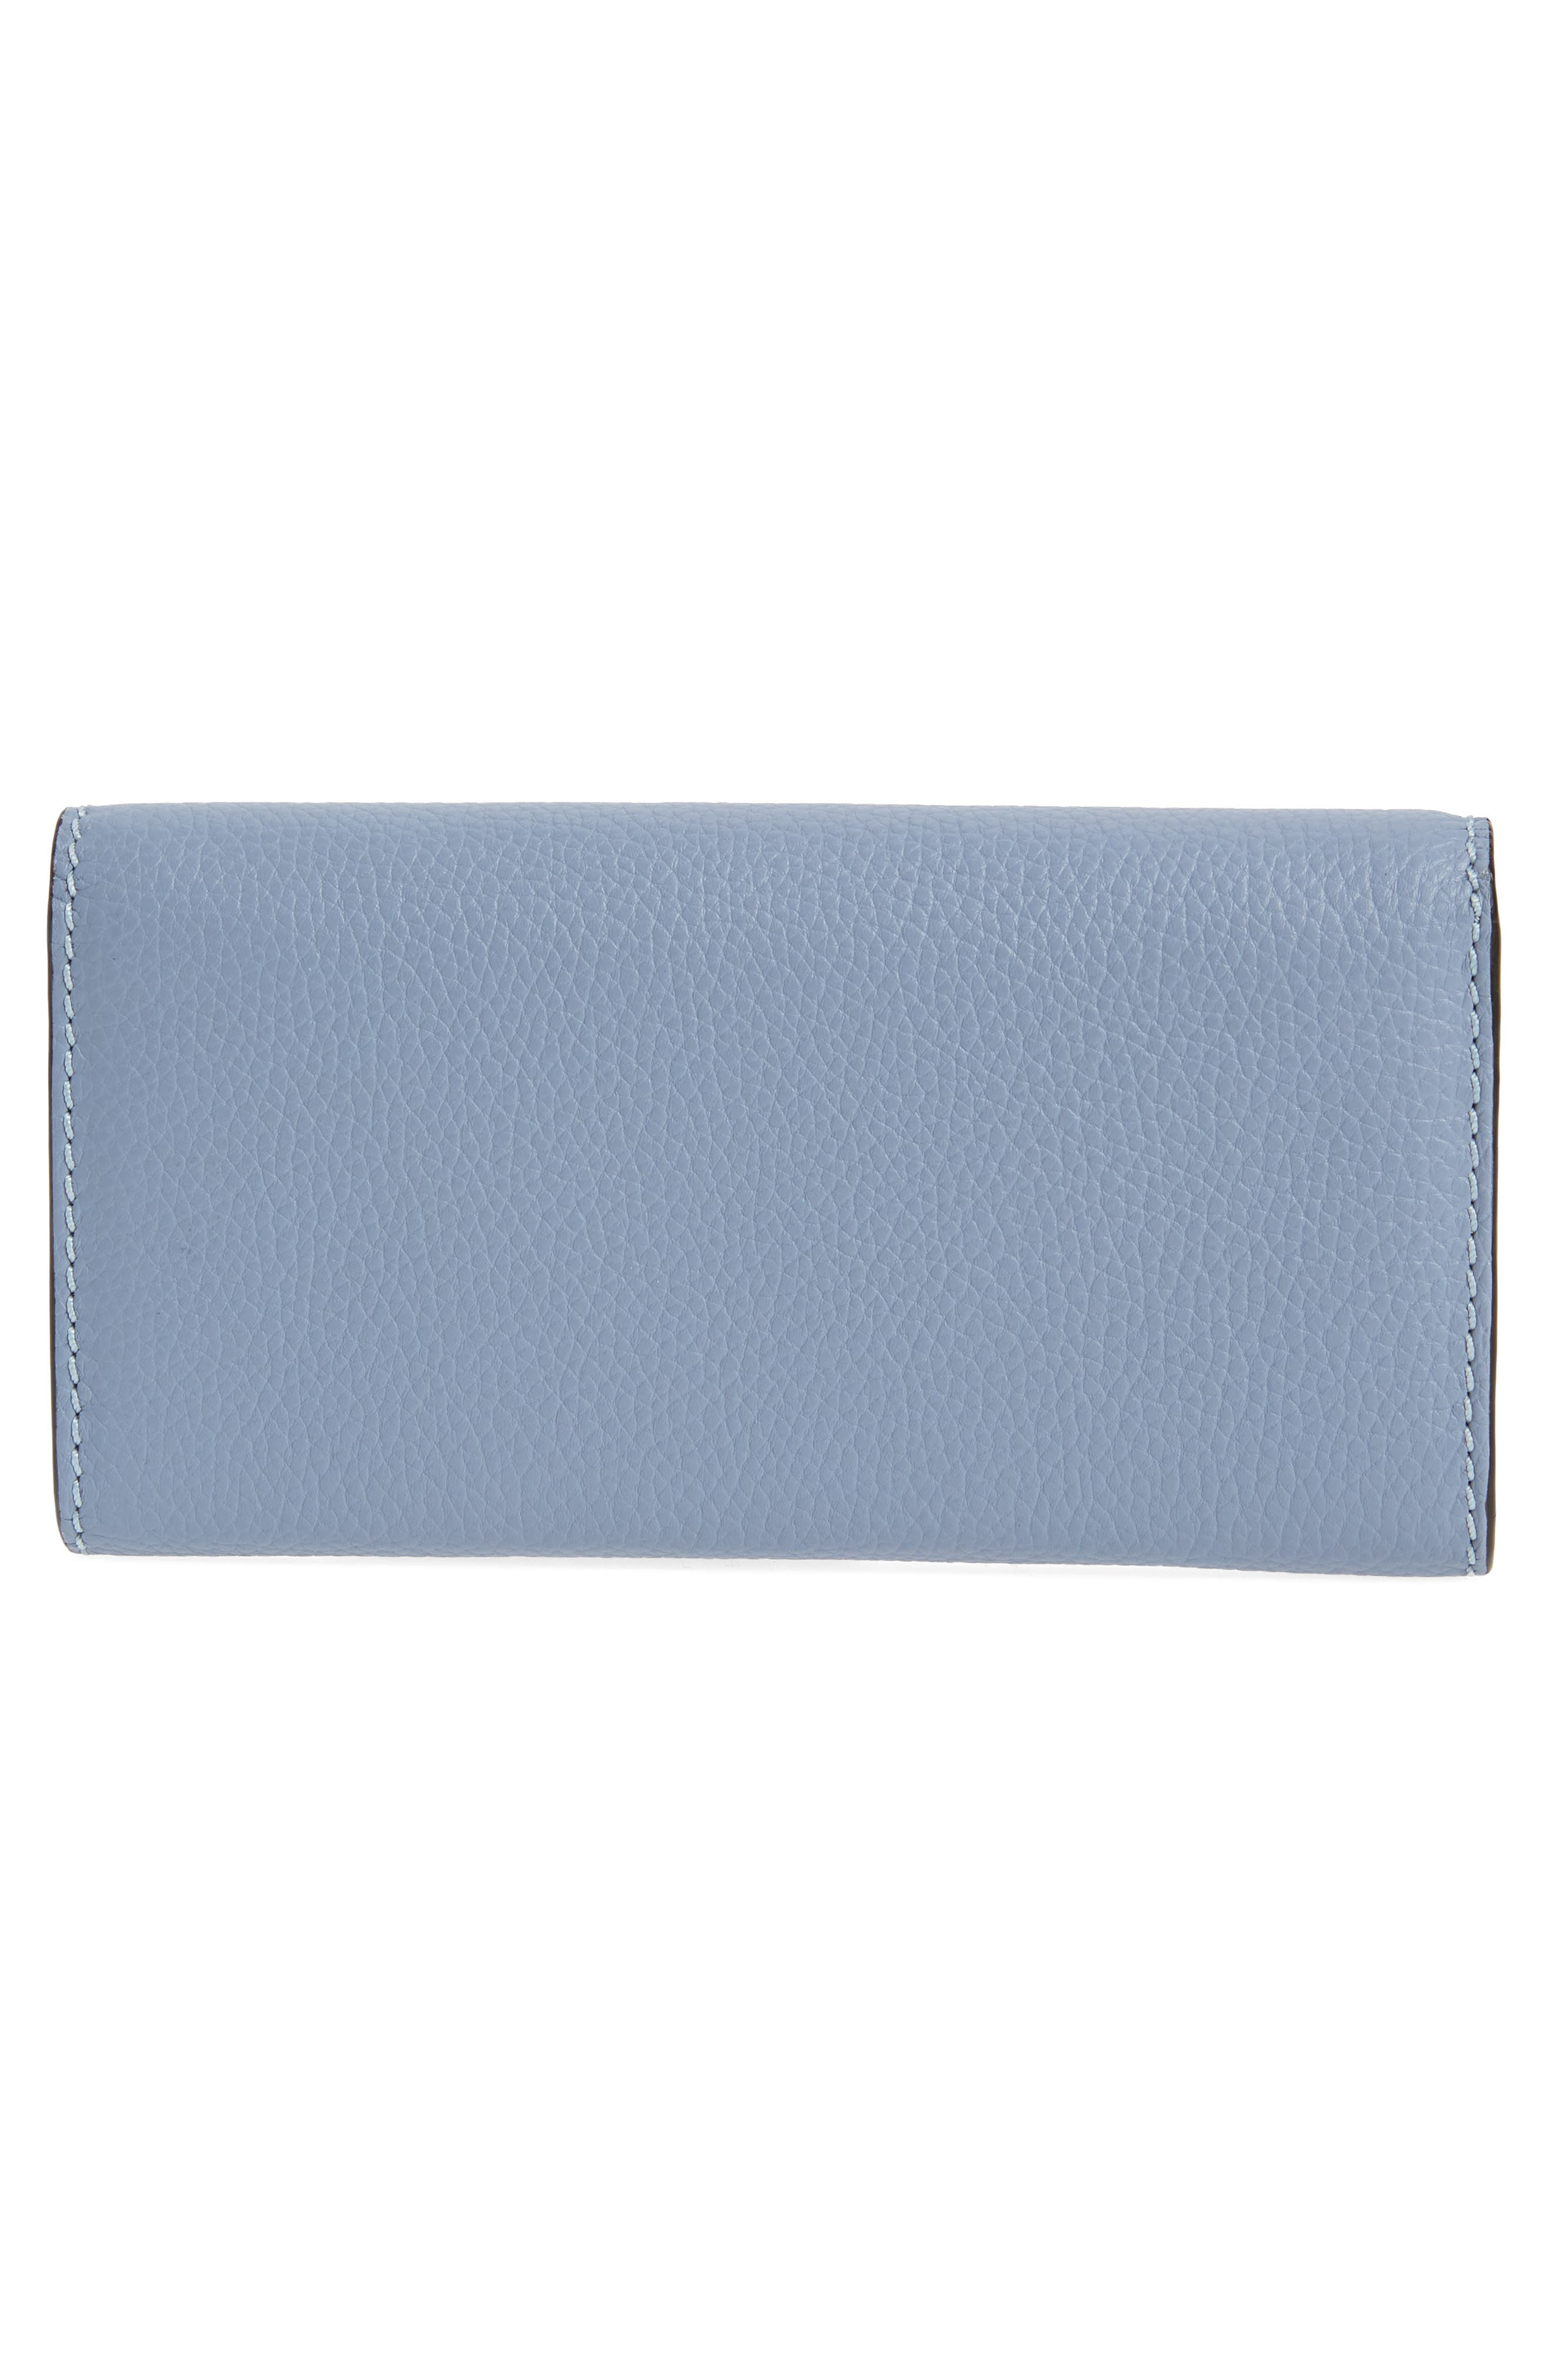 Marcie - Long Leather Flap Wallet,                             Alternate thumbnail 3, color,                             WASHED BLUE